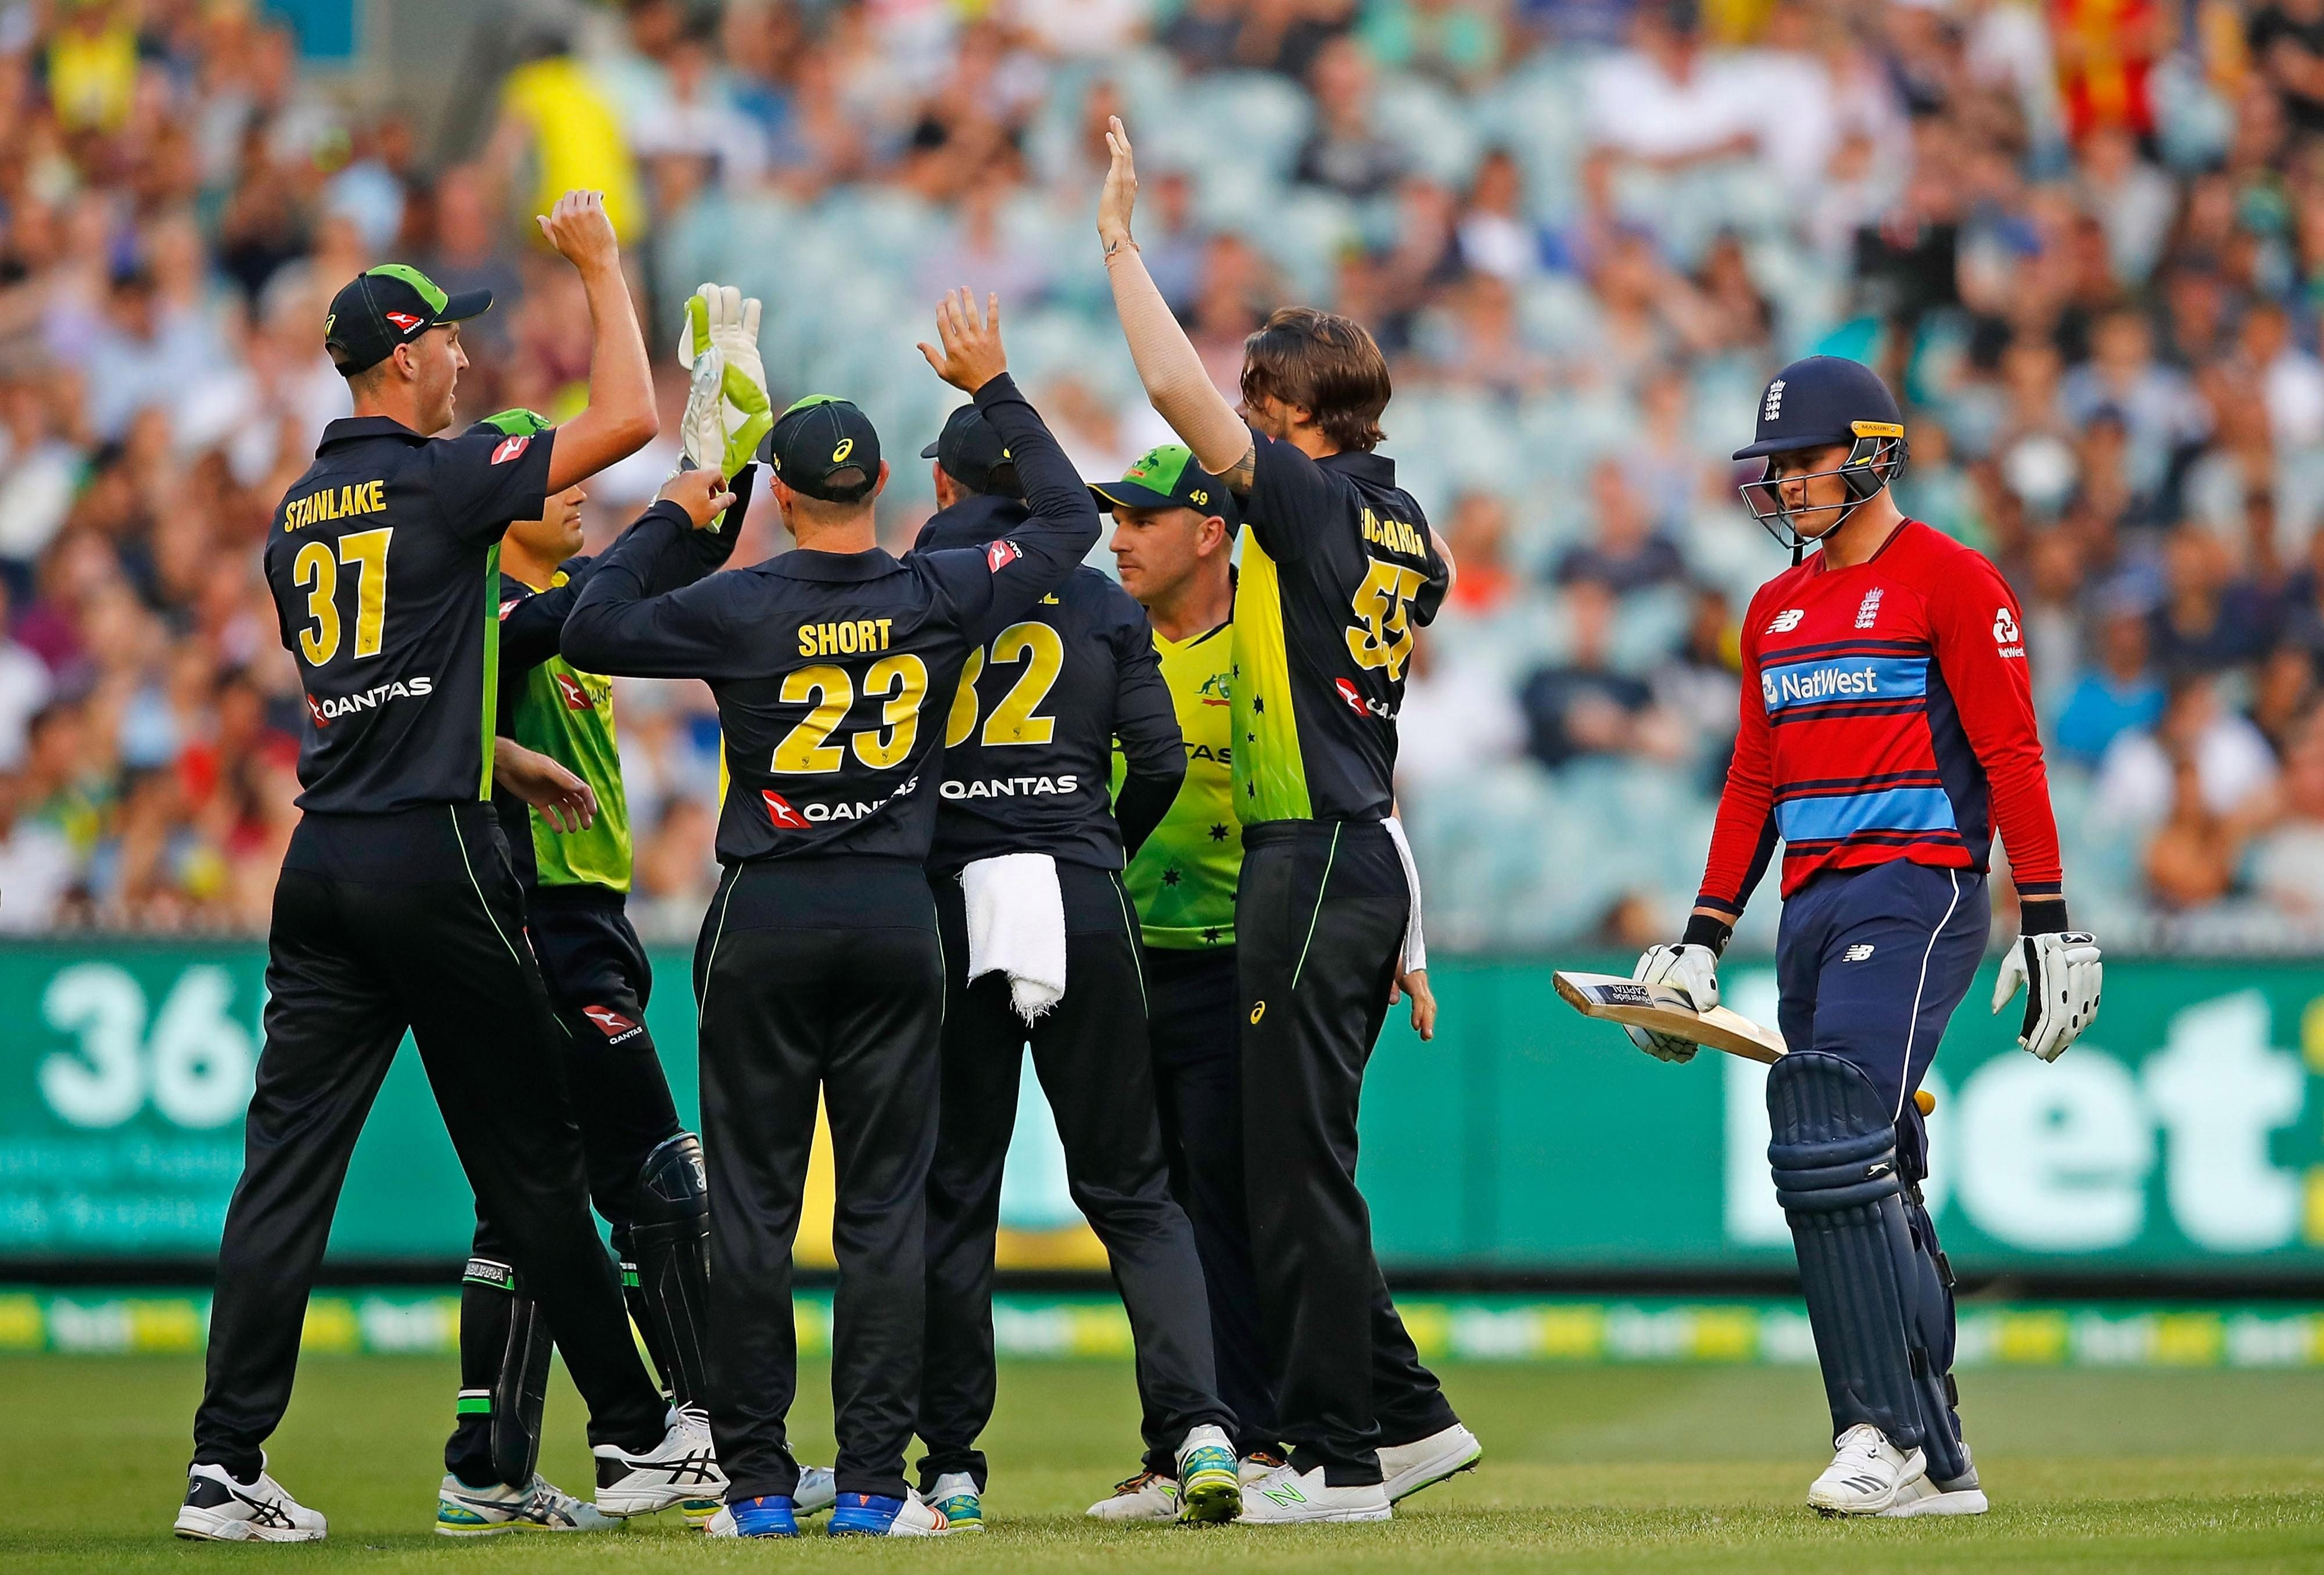 England stuttered to a massively sub-par 137-7 from their 20 overs